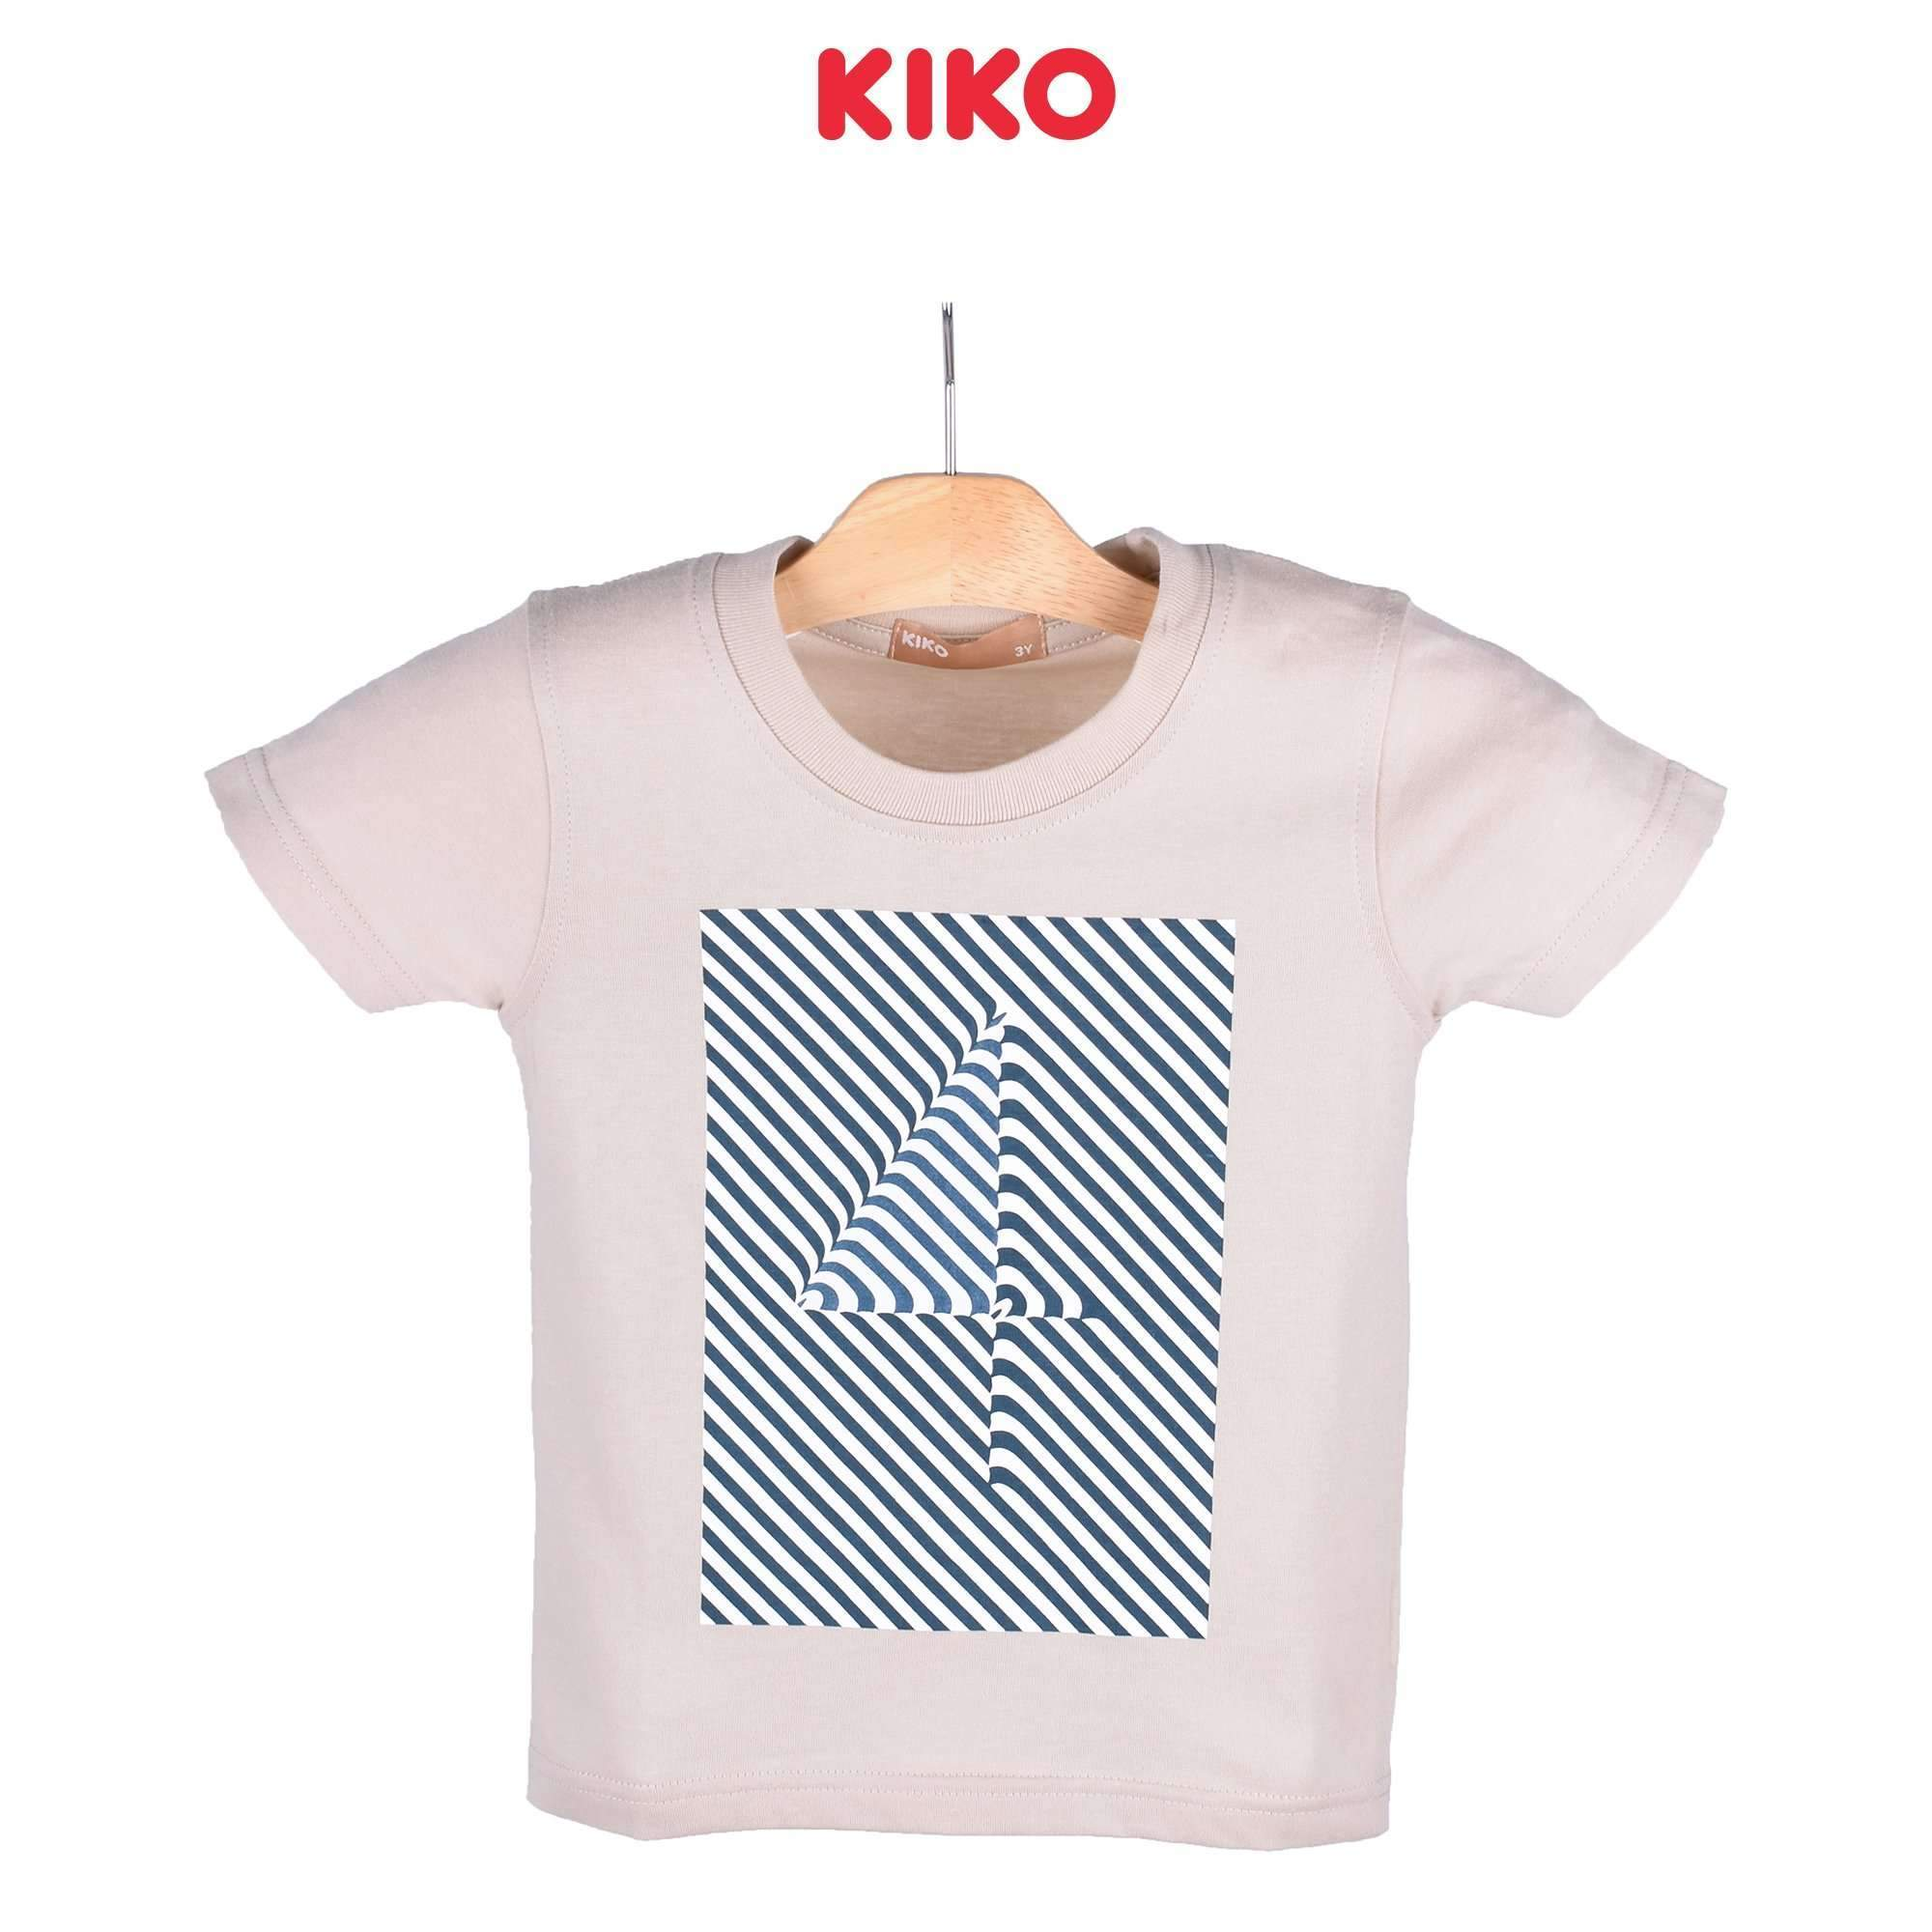 KIKO Boy Short Sleeve Tee 121242-113 : Buy KIKO online at CMG.MY